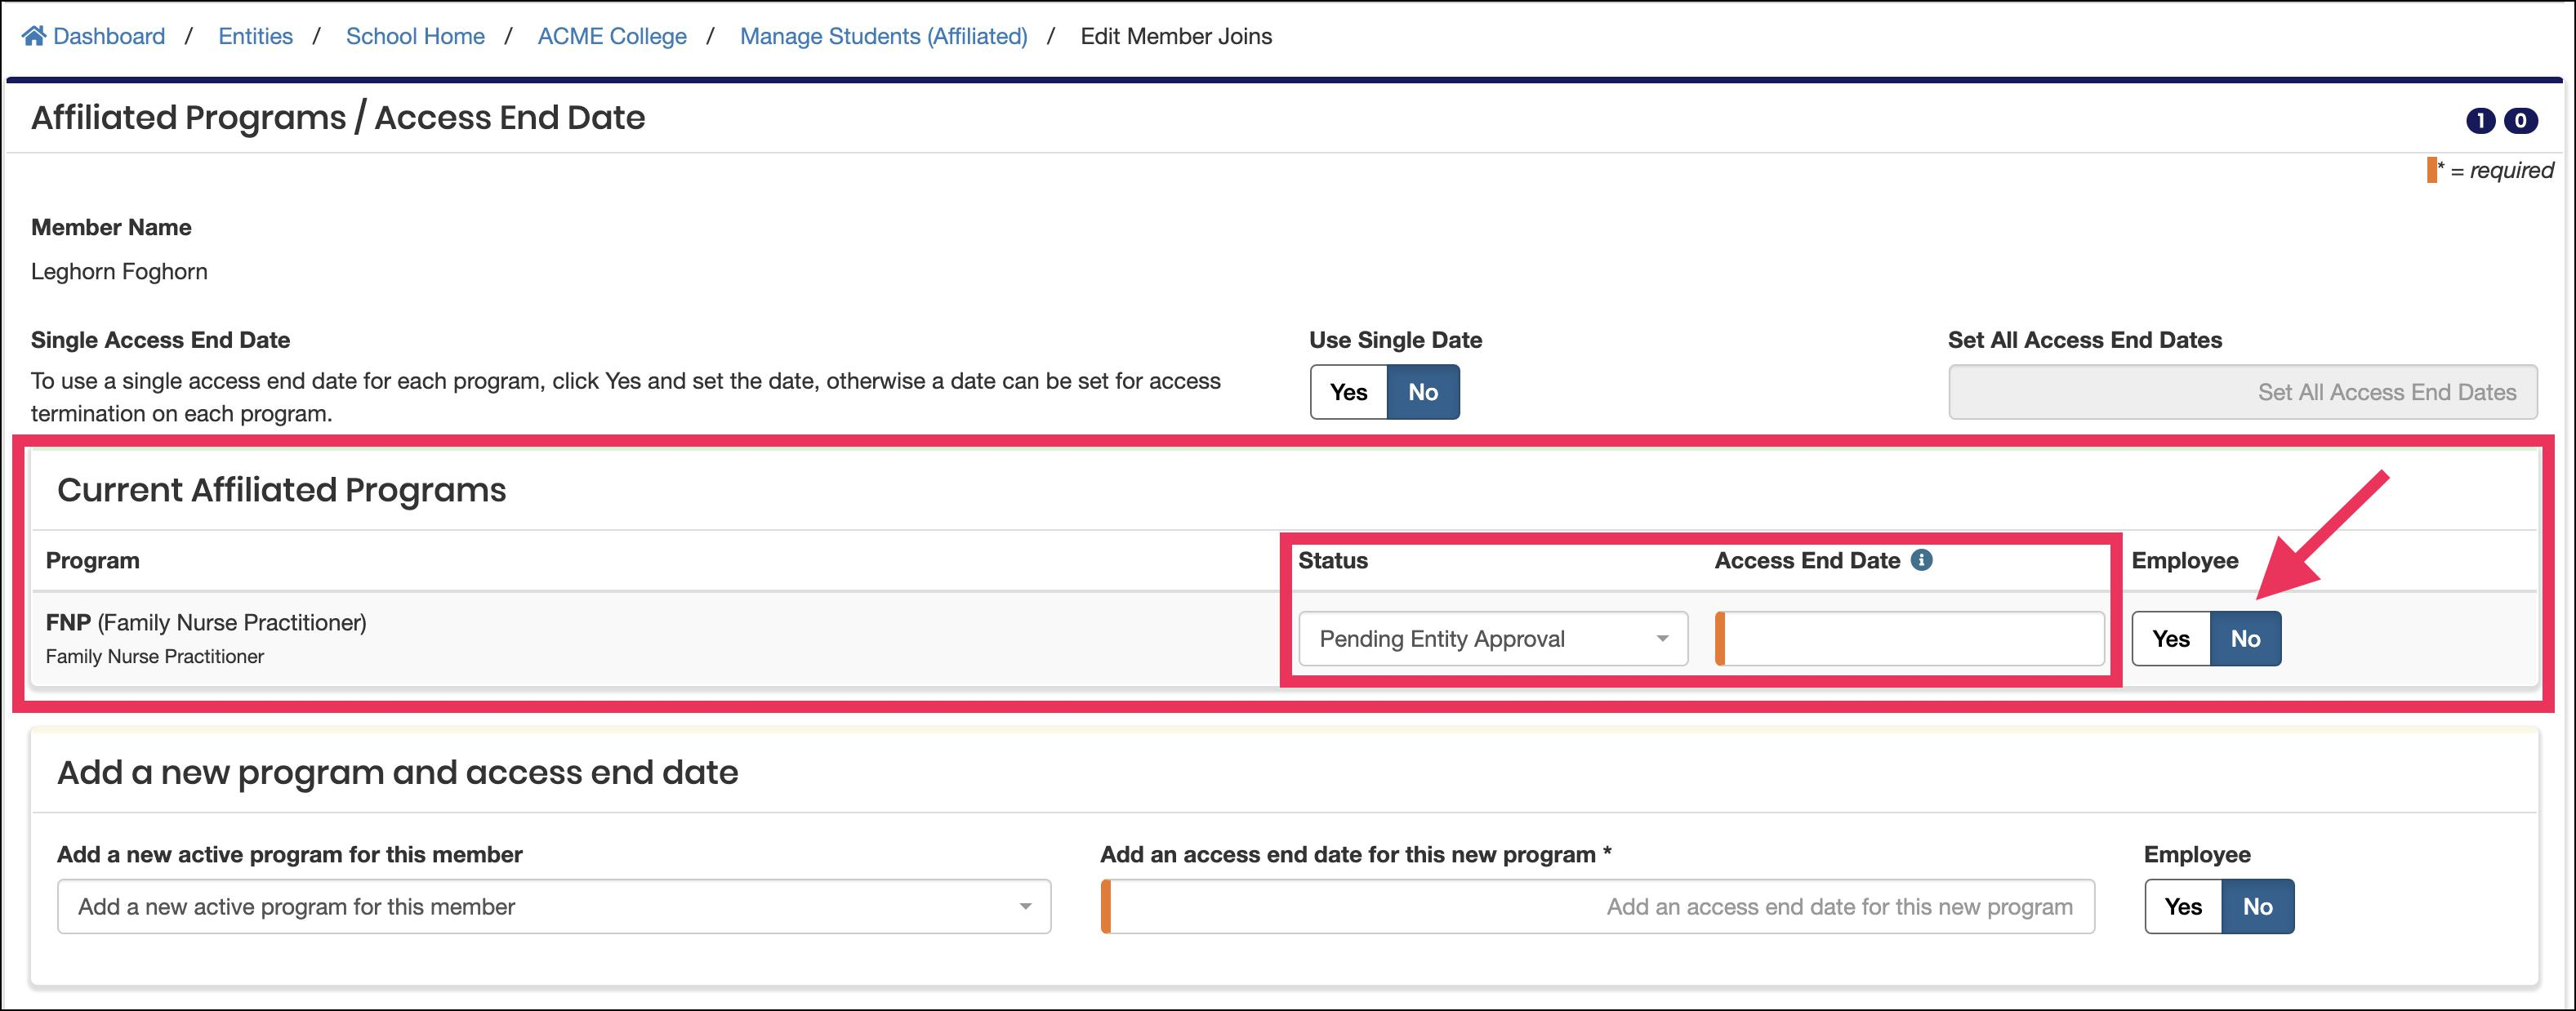 Edit Member Join screen pointing to current request Status, Access End Date, and Employee Toggle